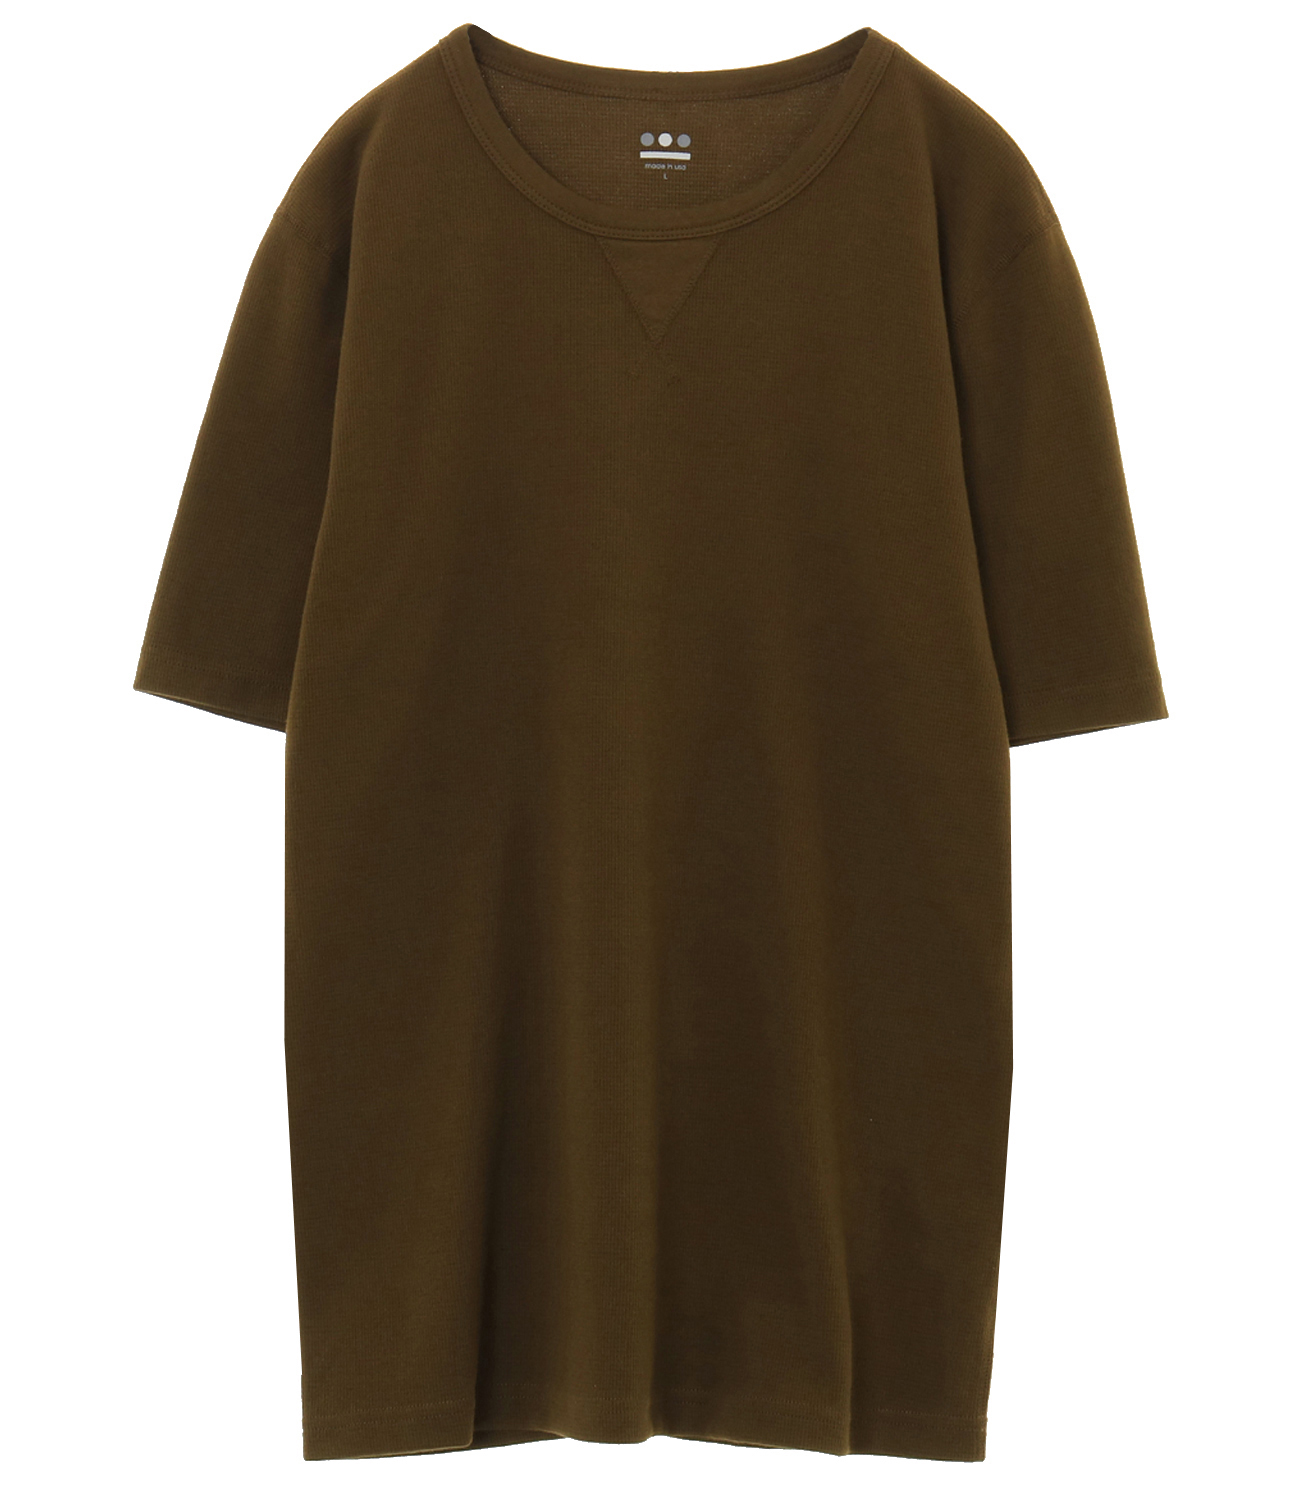 brushed thermal crew 詳細画像 olive brunch 1